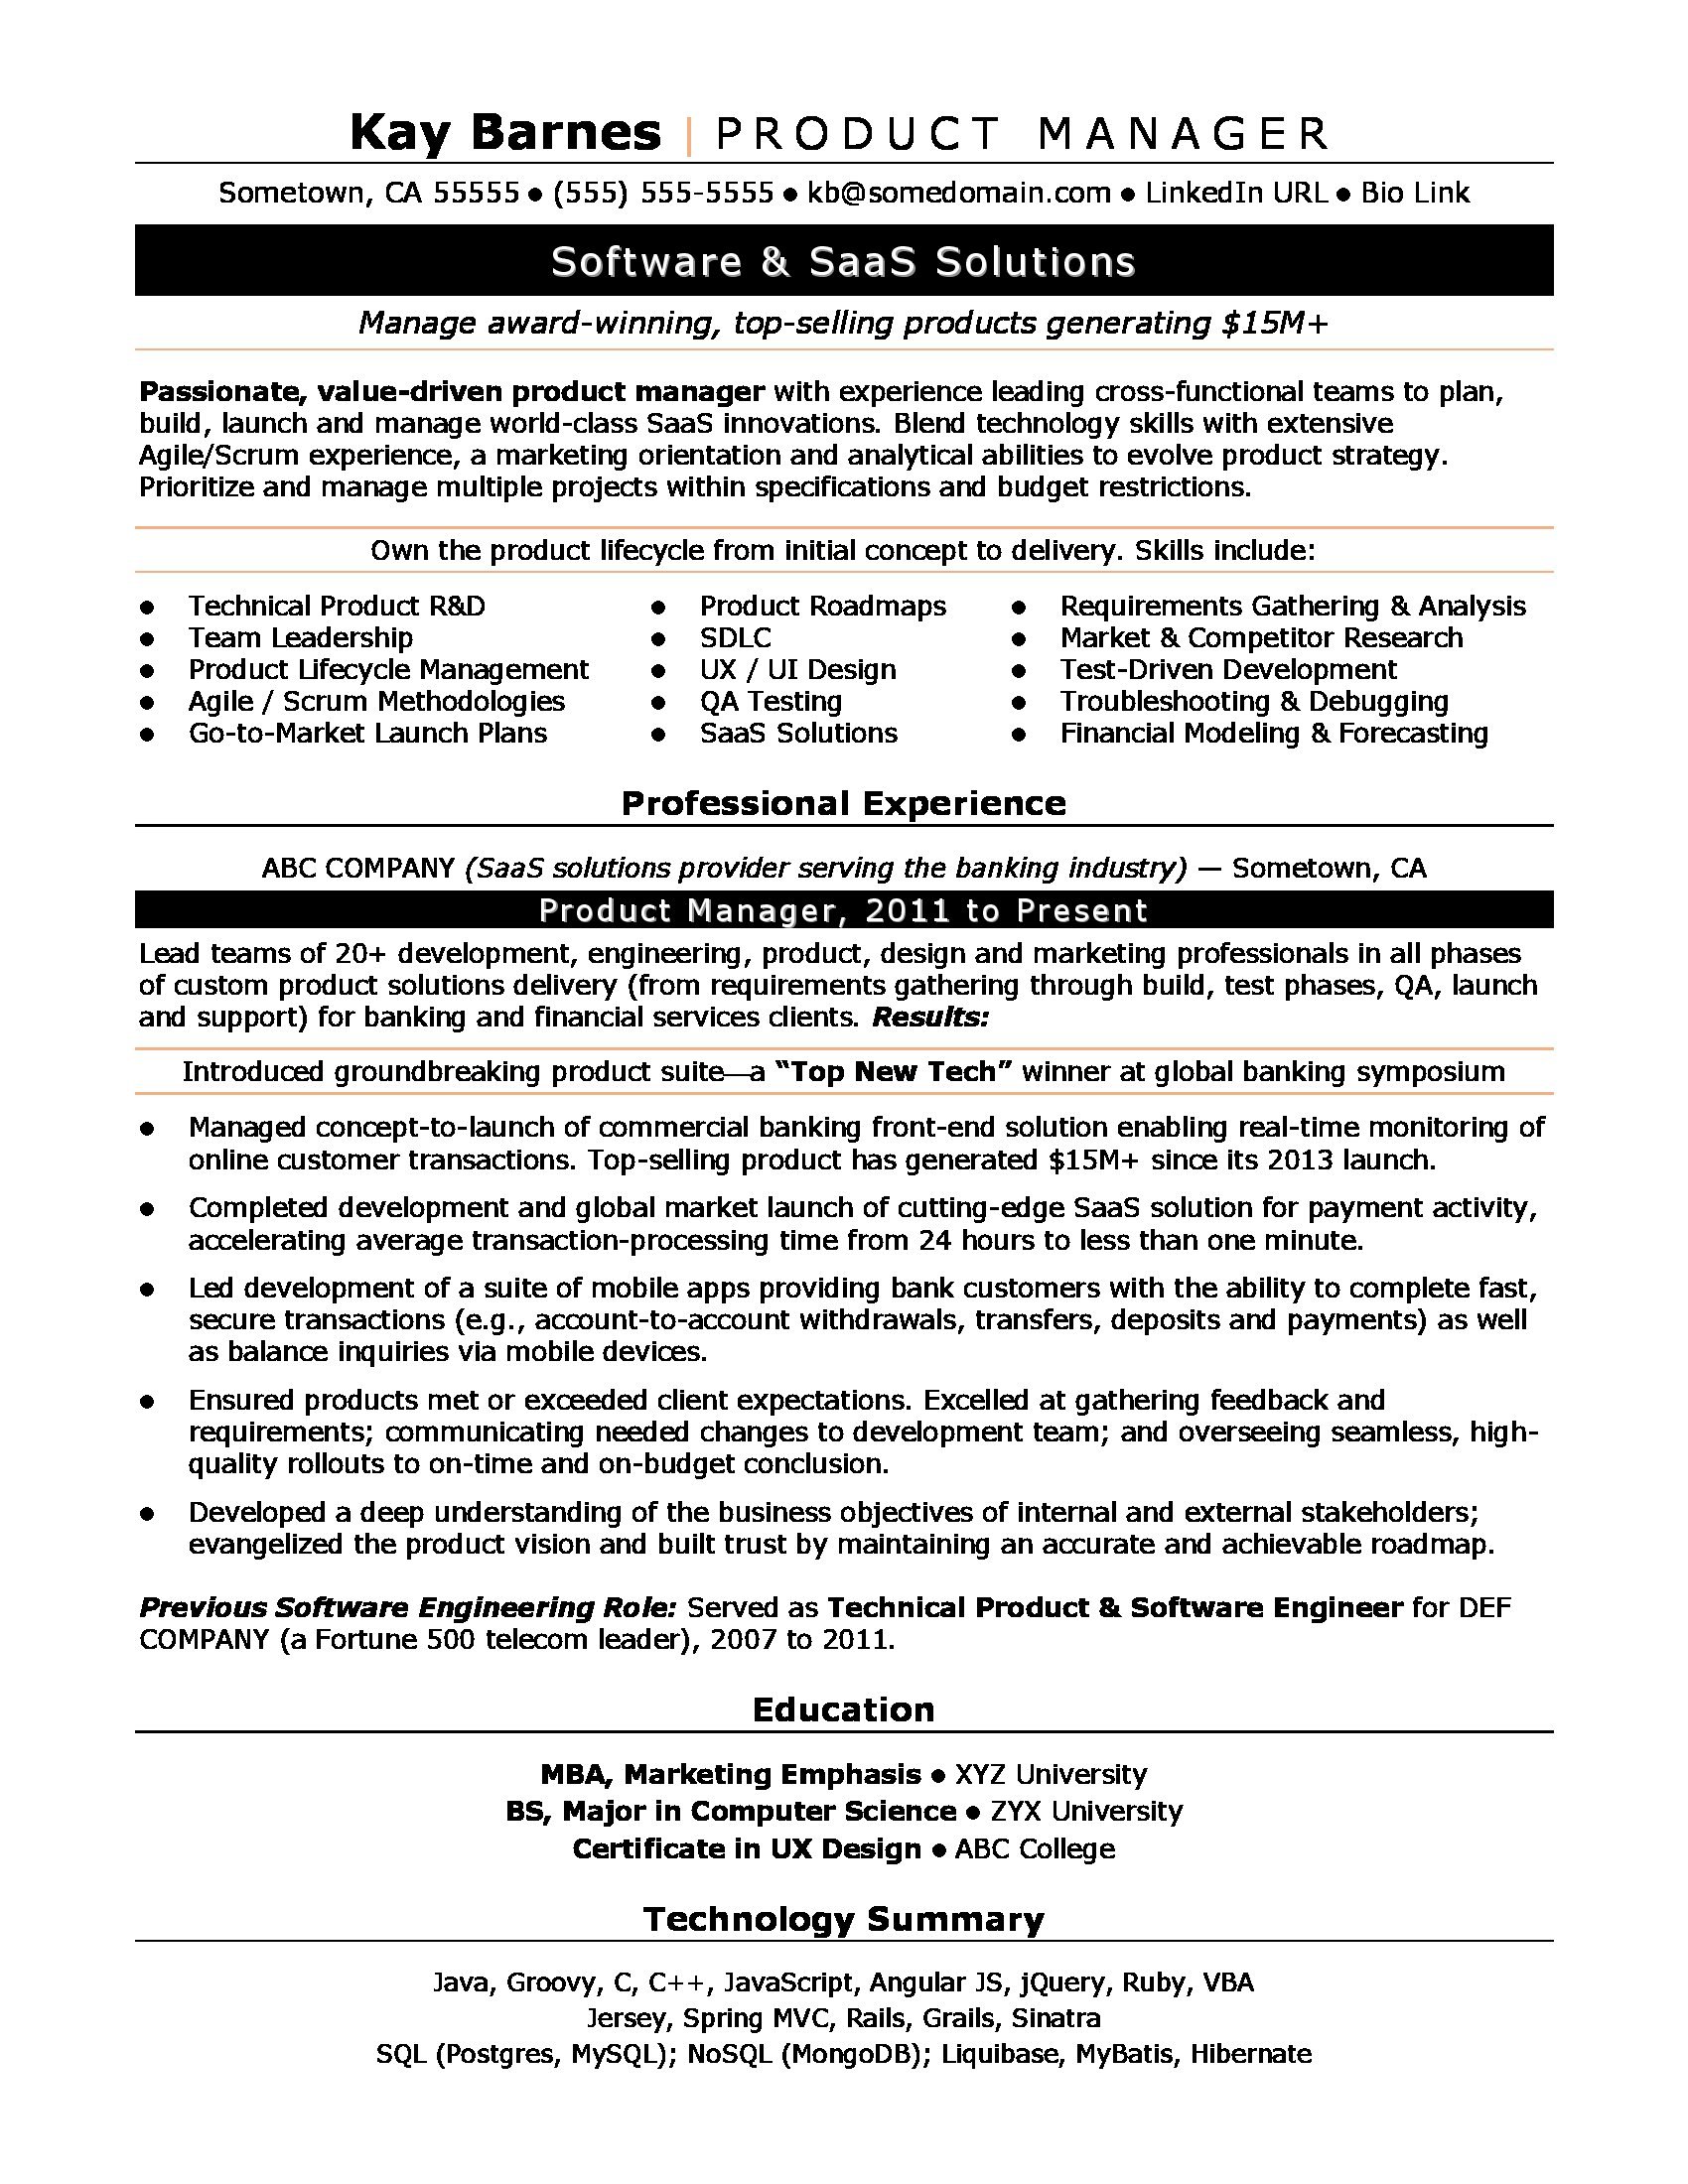 product manager resume sample monster telecom productmanager forensic scientist software Resume Telecom Product Manager Resume